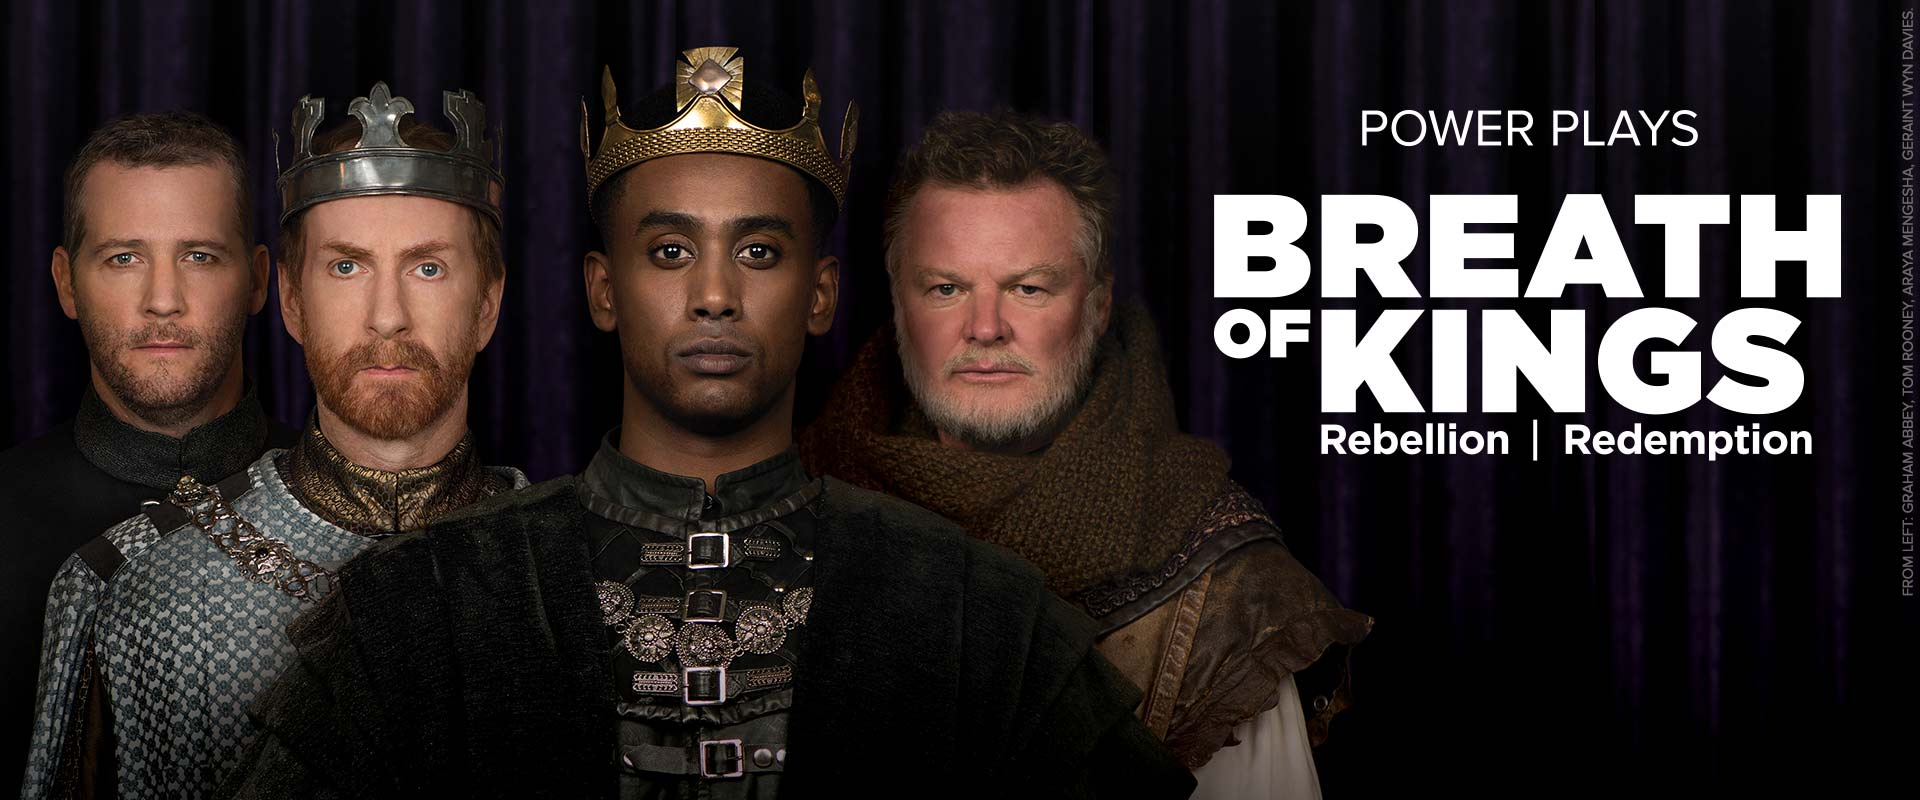 Breath of Kings publicity photo